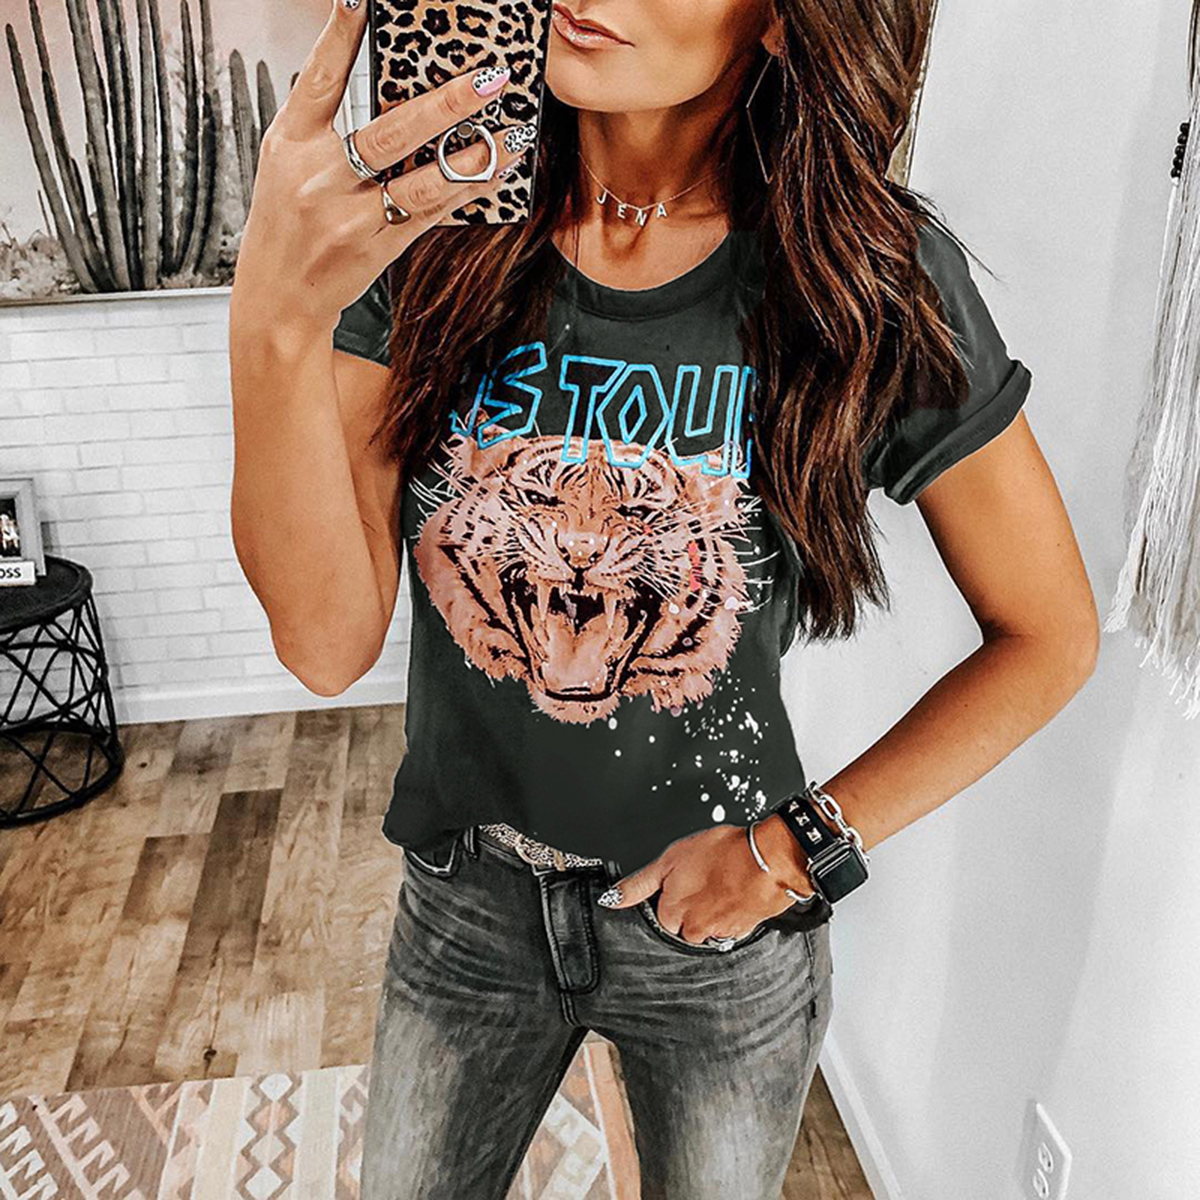 T-shirt Women US Tour Tiger Print Tops Tees Shirt Short Sleeve O Neck Streetwear Vintage Cotton Tshirts Female 2019 Summer New